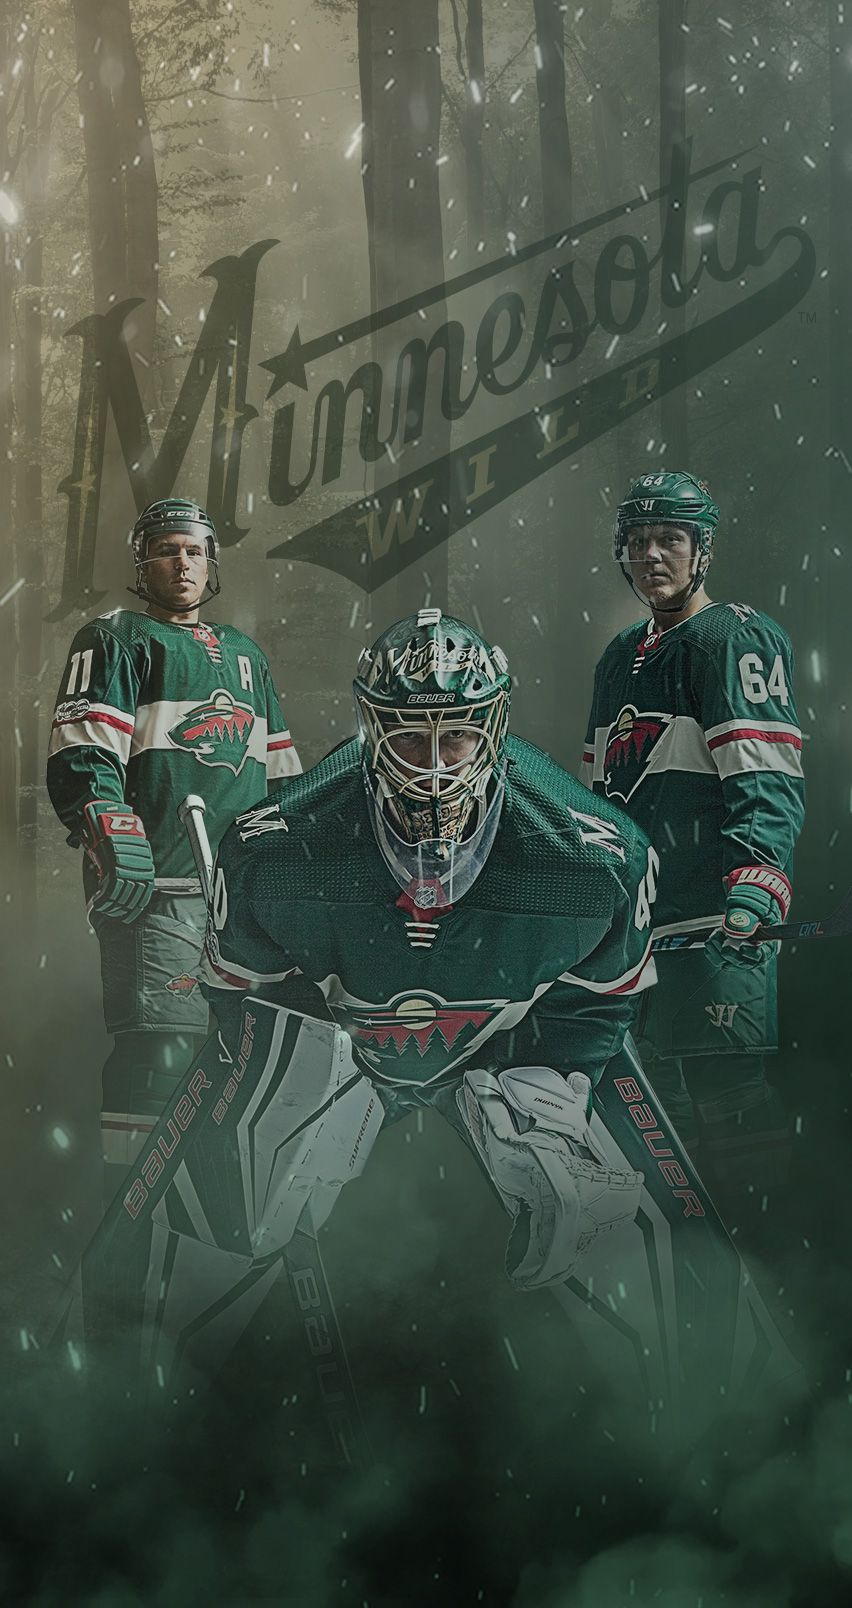 Nhl Iphone Wallpapers Top Free Nhl Iphone Backgrounds